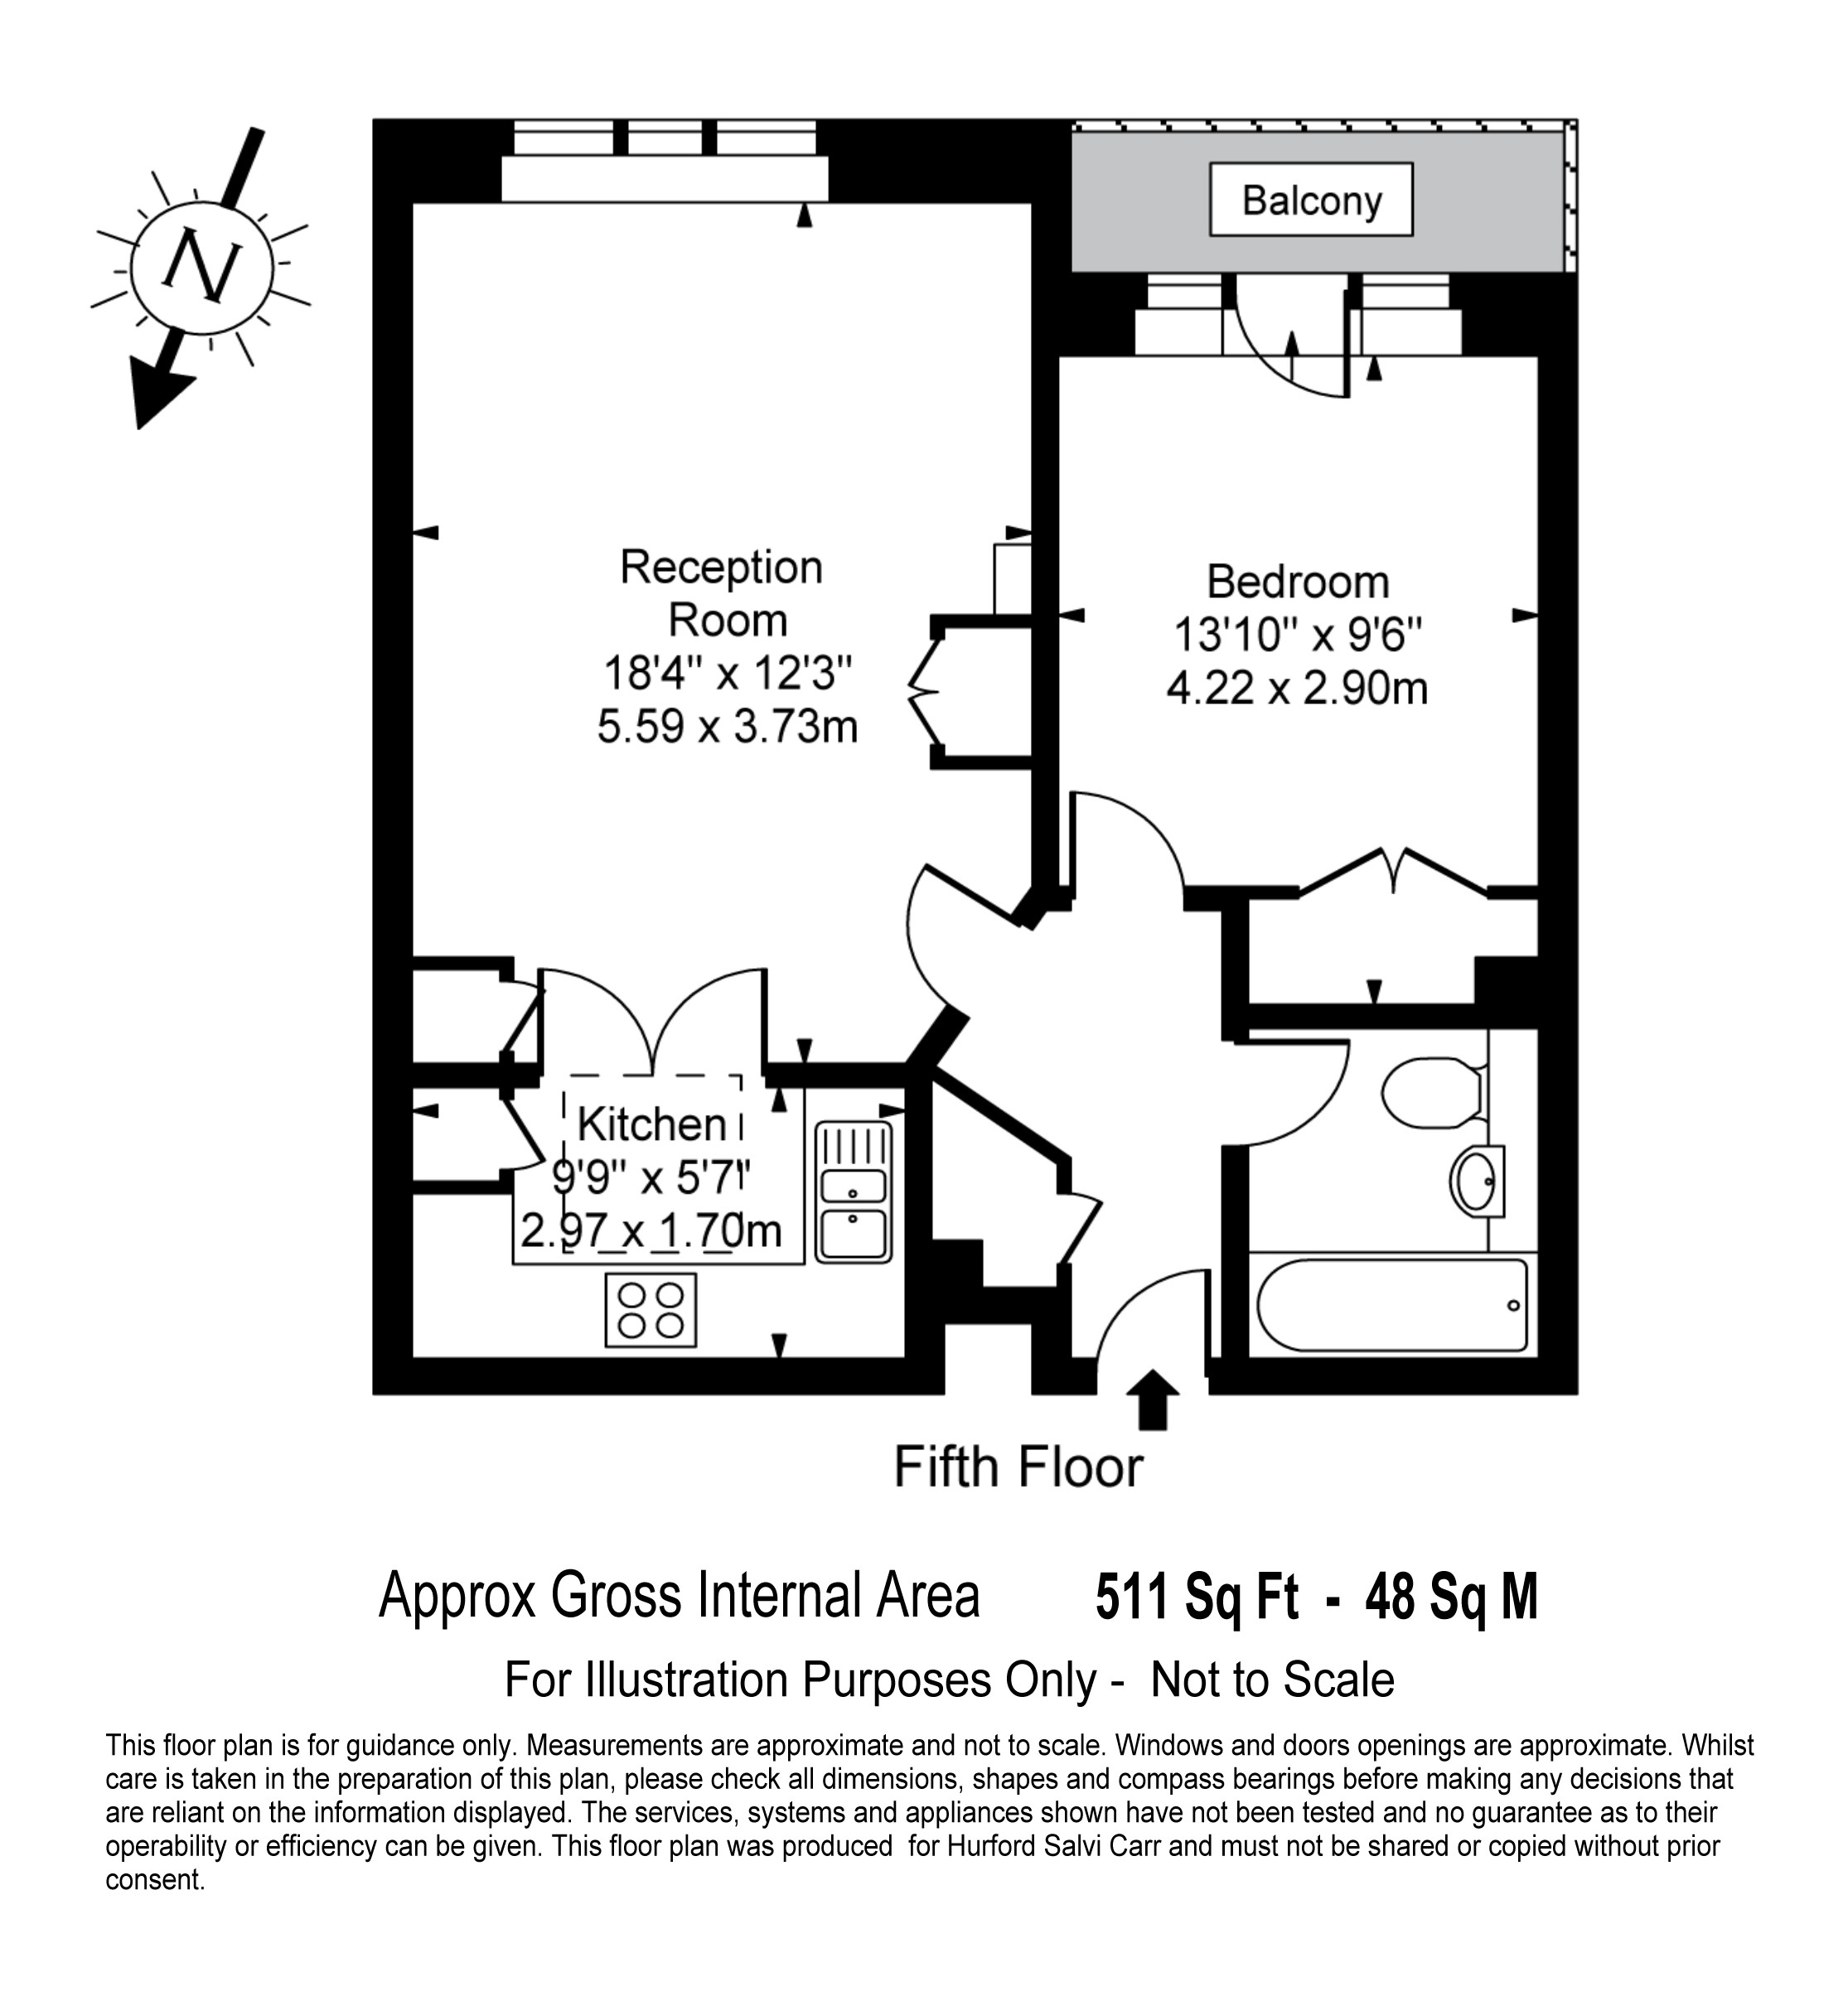 Little Britain, London, EC1A floorplan